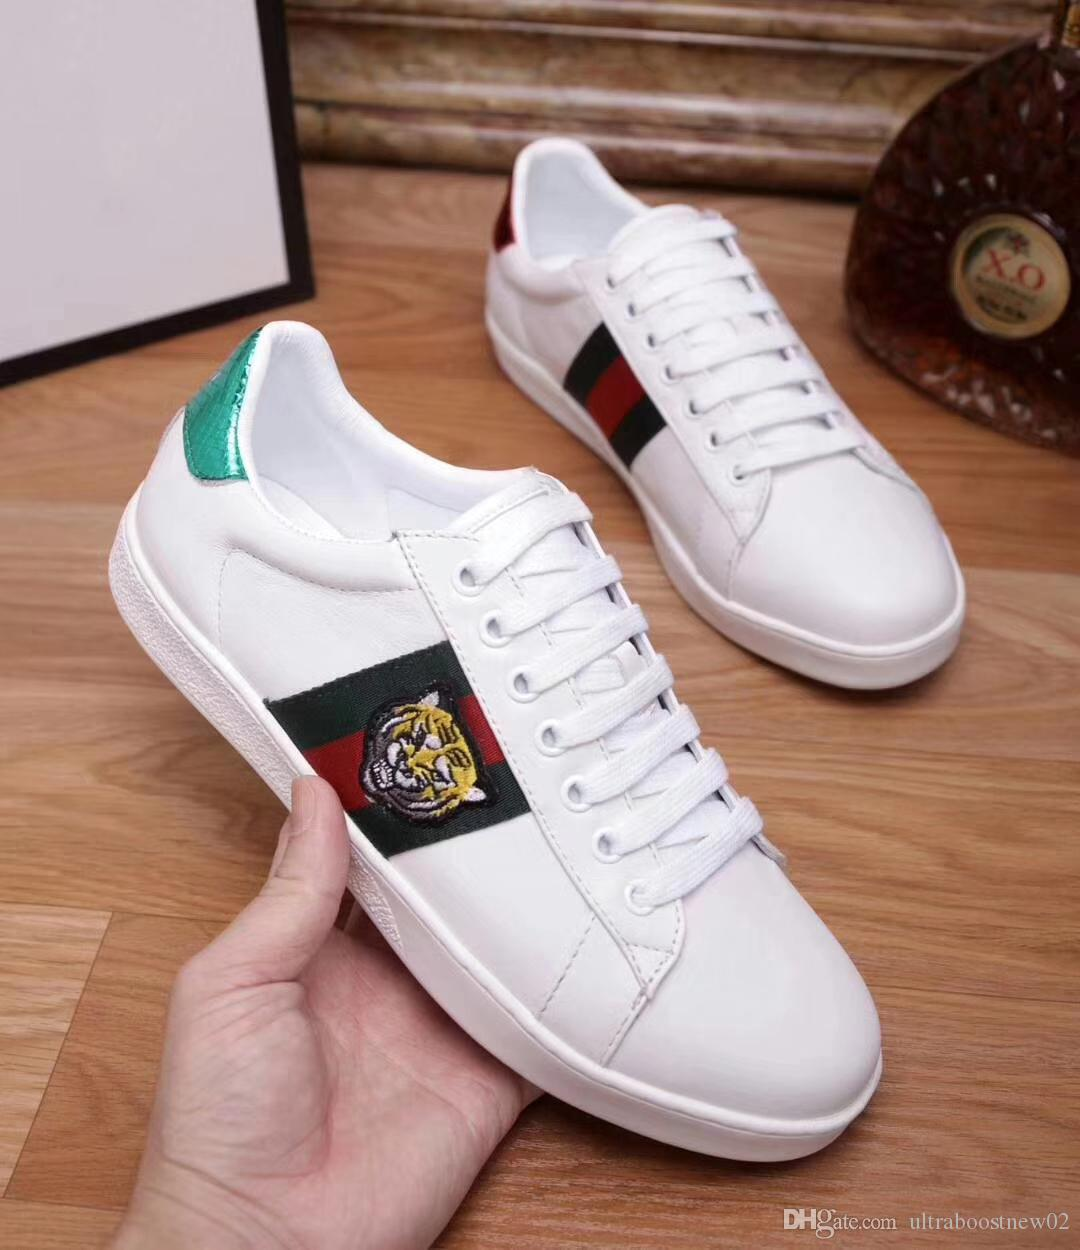 ... Women Shoes Ace Genuine Leather Embroidery Tiger White Black with Top  Quality Size 34-46 Designer Sneakers Shose Men Women Shoes Cheap Sneakers  Online ... 9763ce36cd